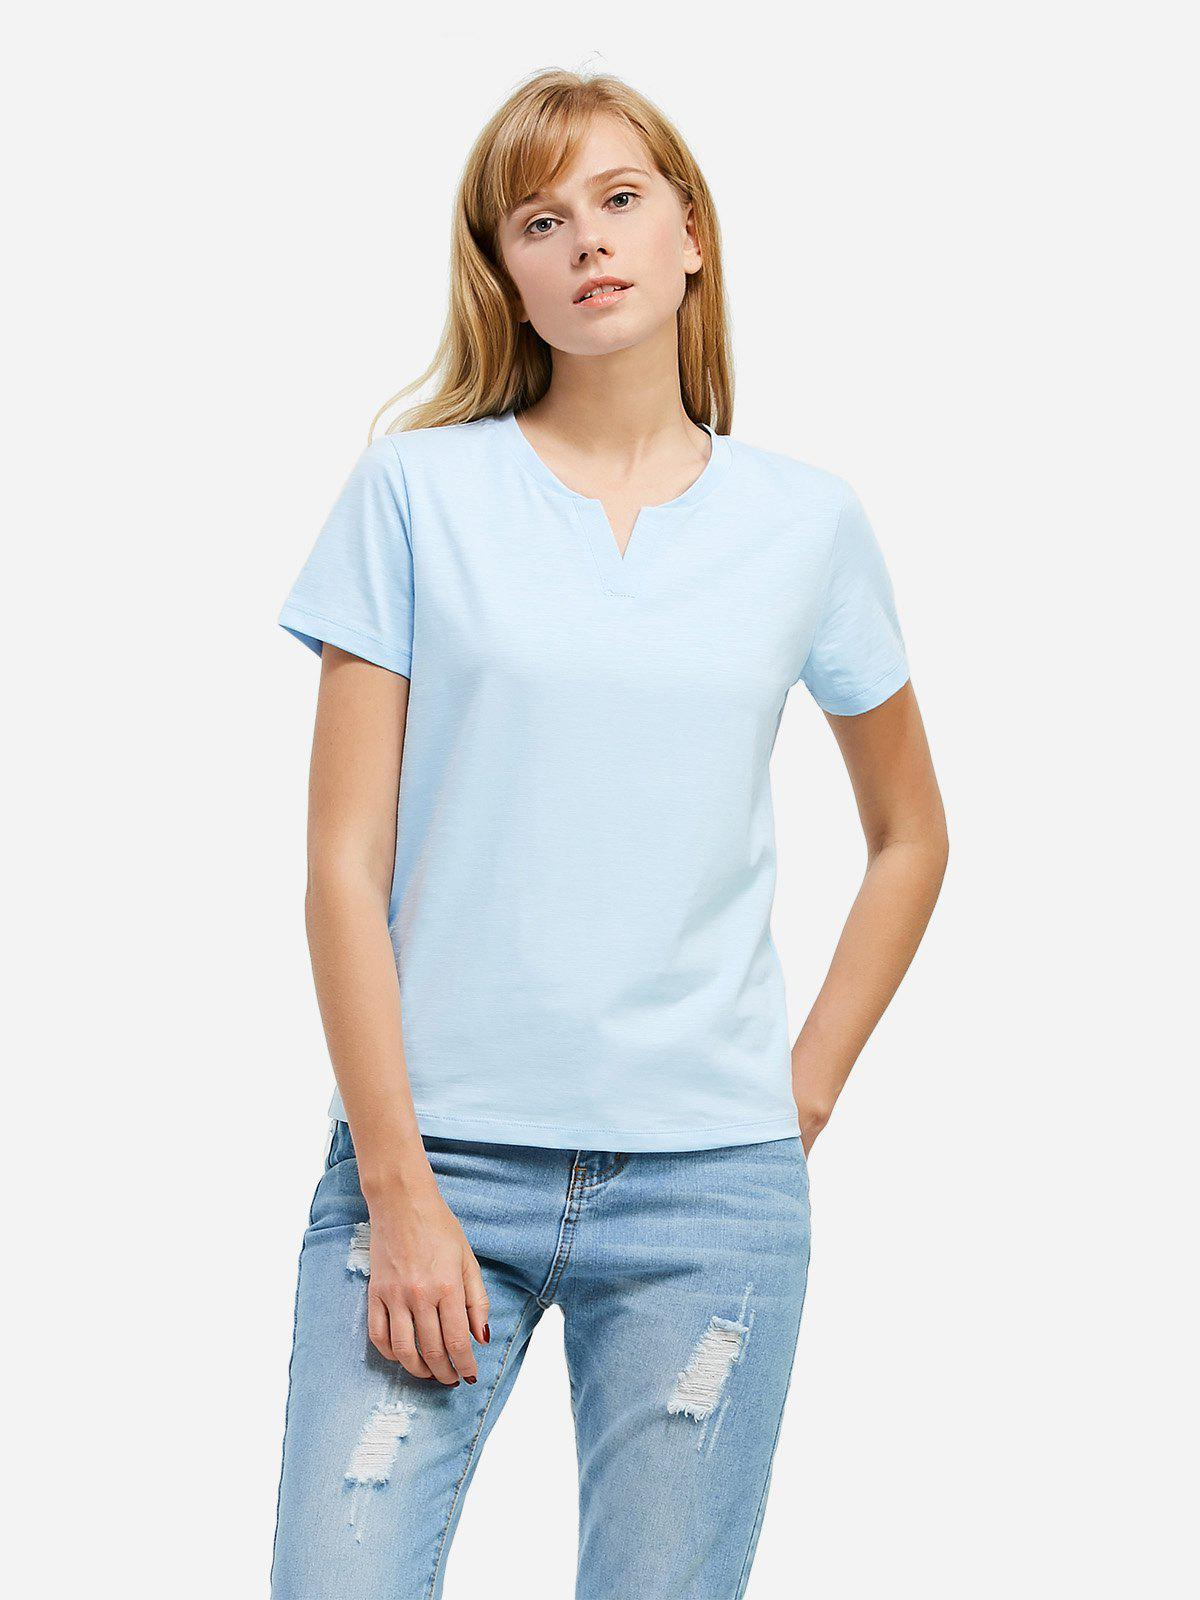 ZAN.STYLE Split Neck T-shirt - LIGHT BLUE M